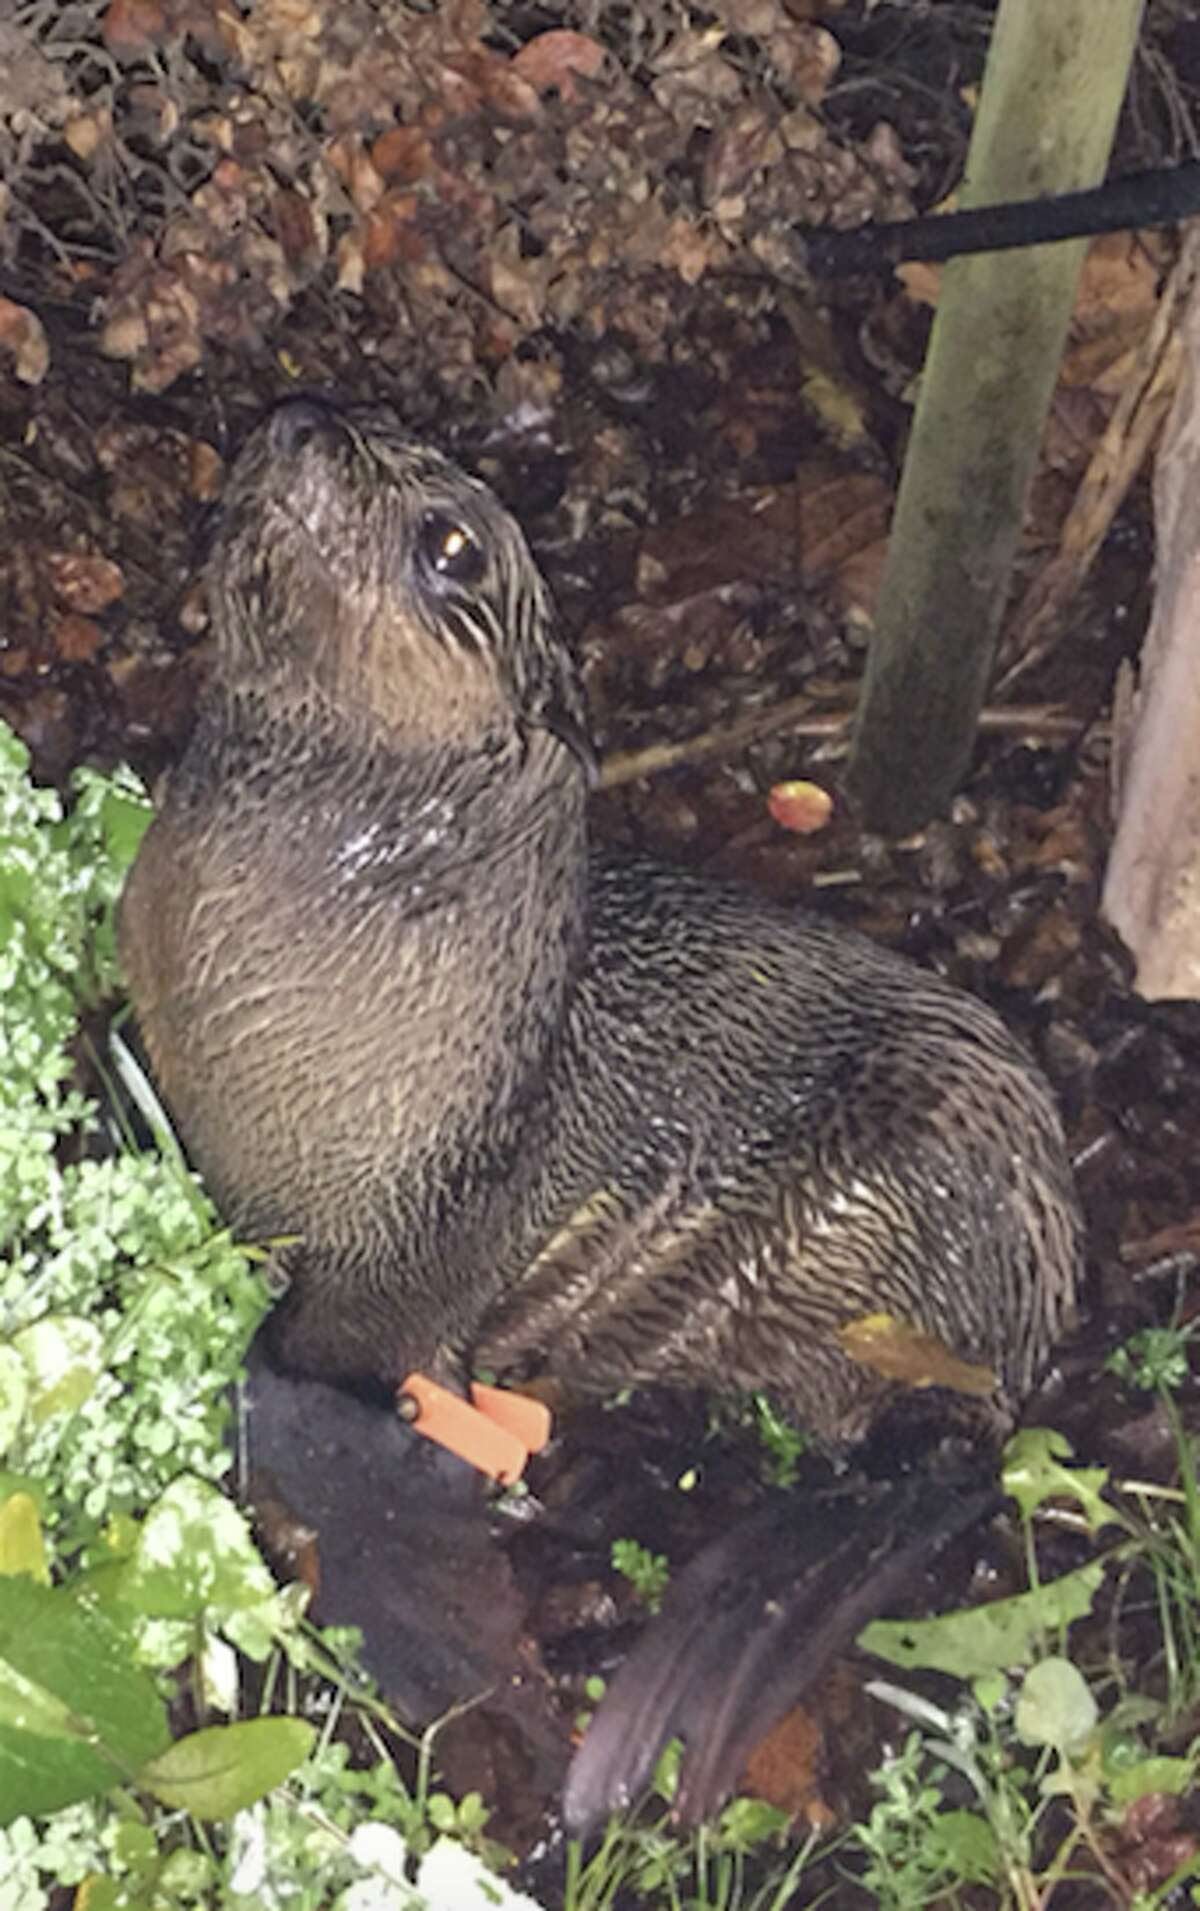 A northern fur seal pup nicknamedPipesterturned up at the front door of a Hayward ironworks shop on Wednesday, Jan. 20, 2016.